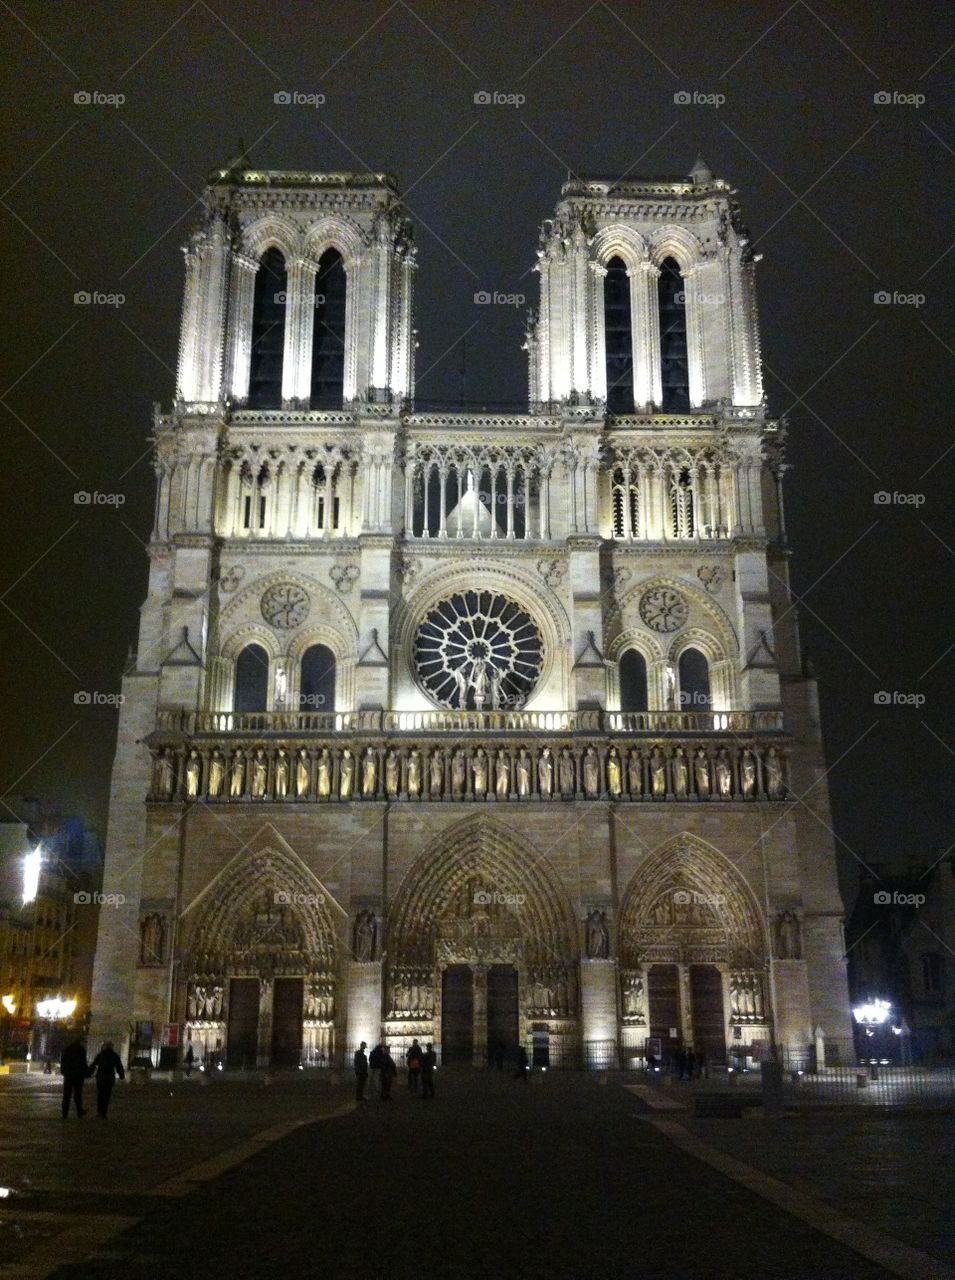 Paris, by night. Notre Dame